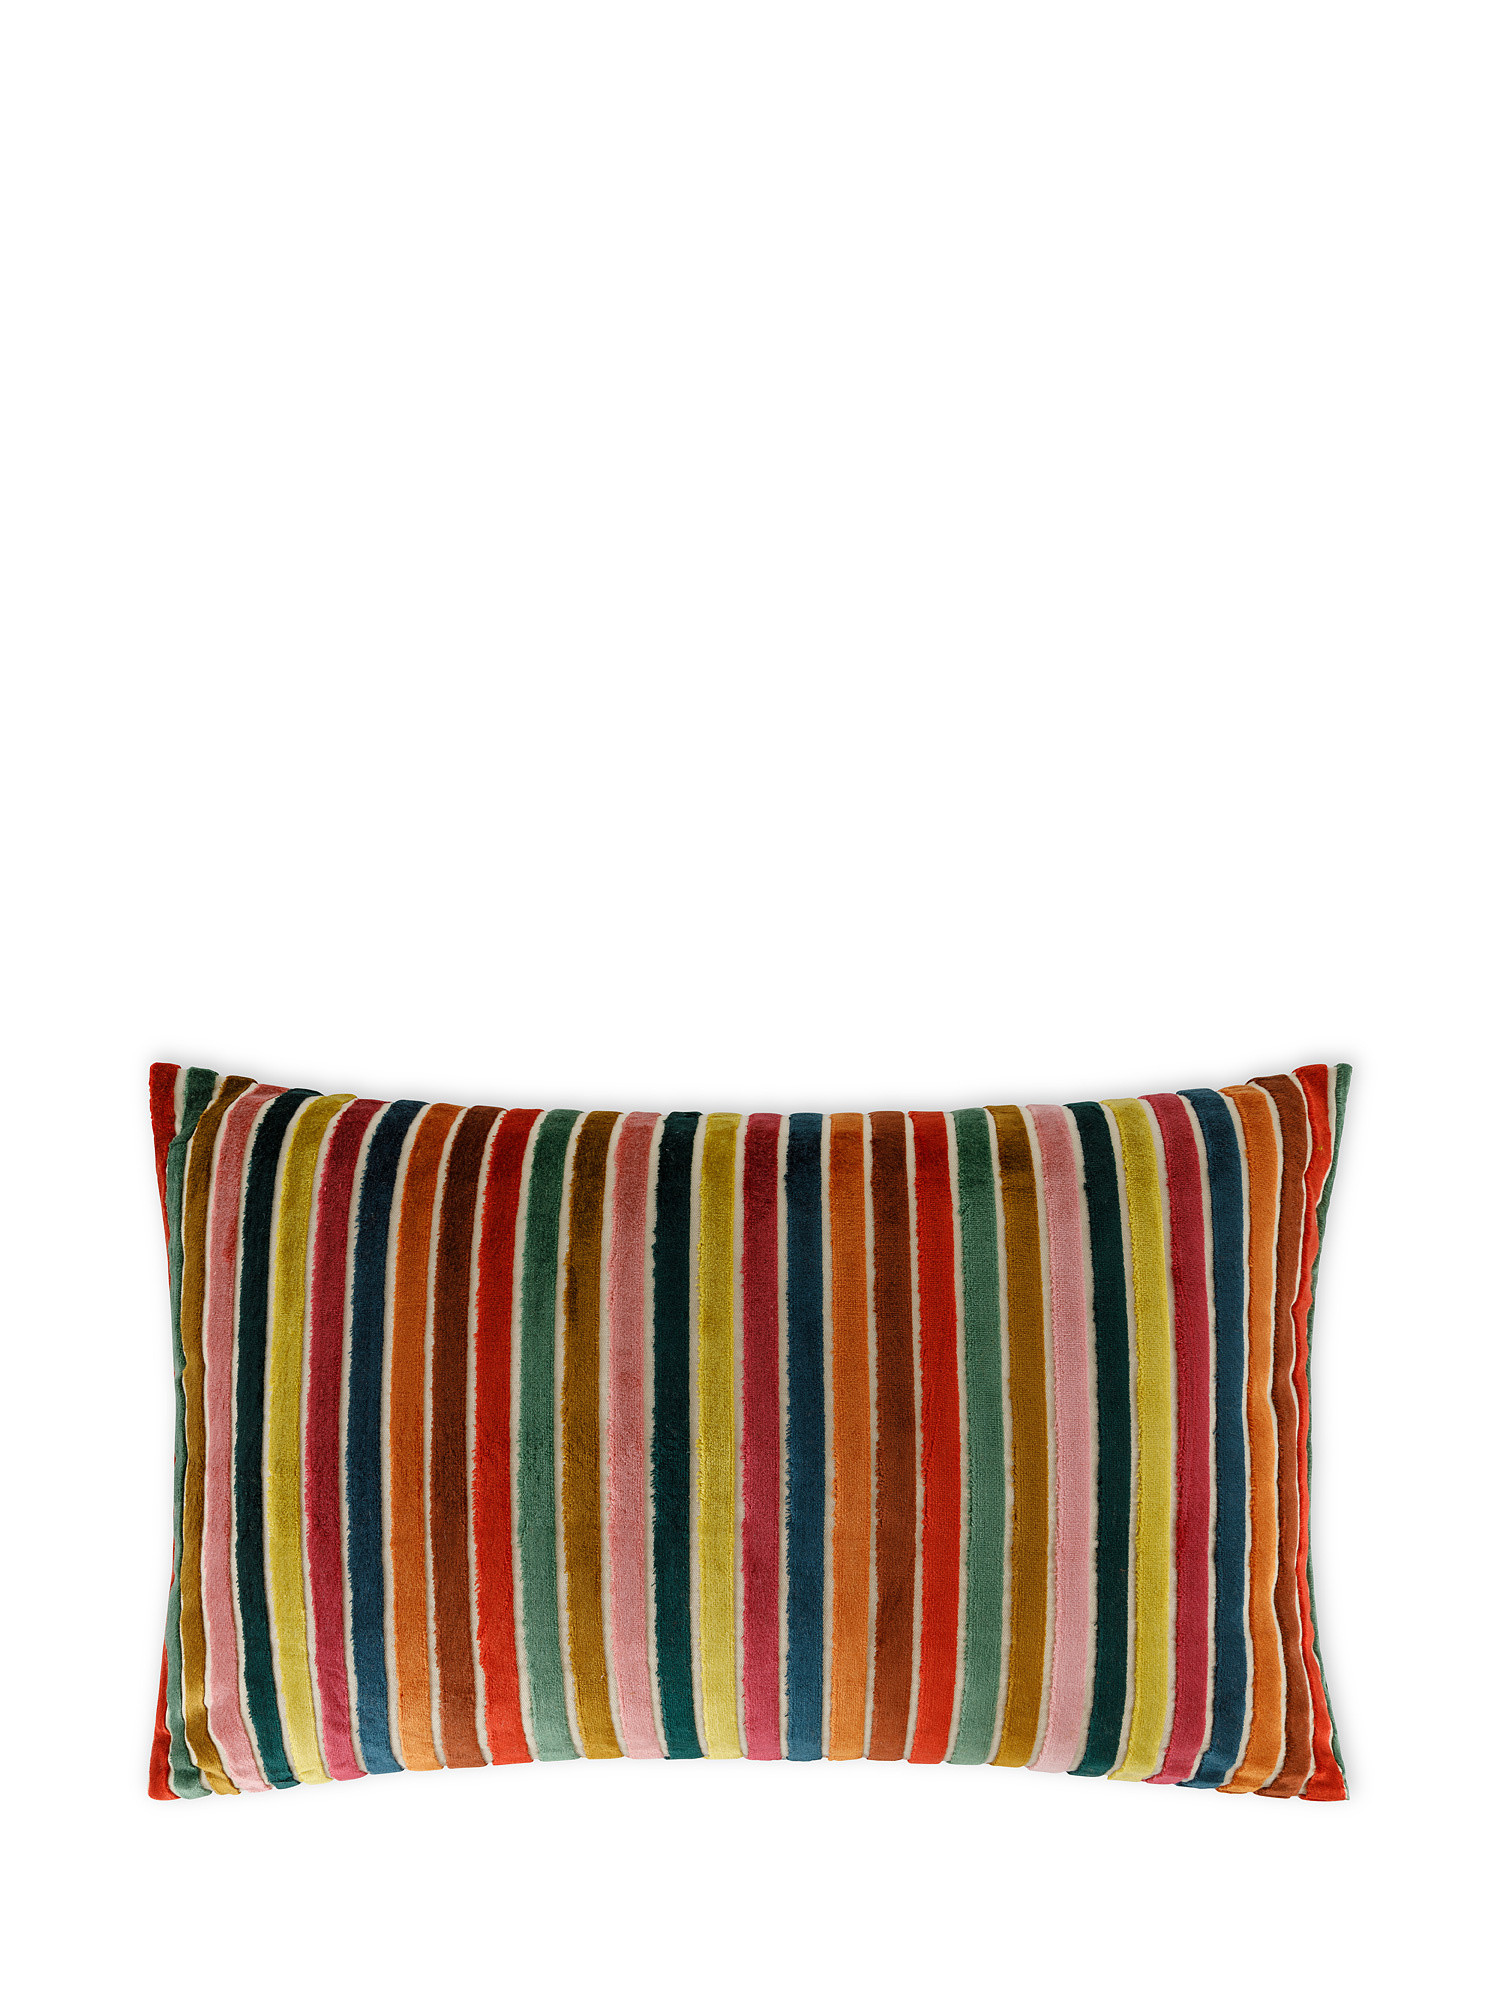 Cuscino jacquard a righe 35x55cm, Multicolor, large image number 1